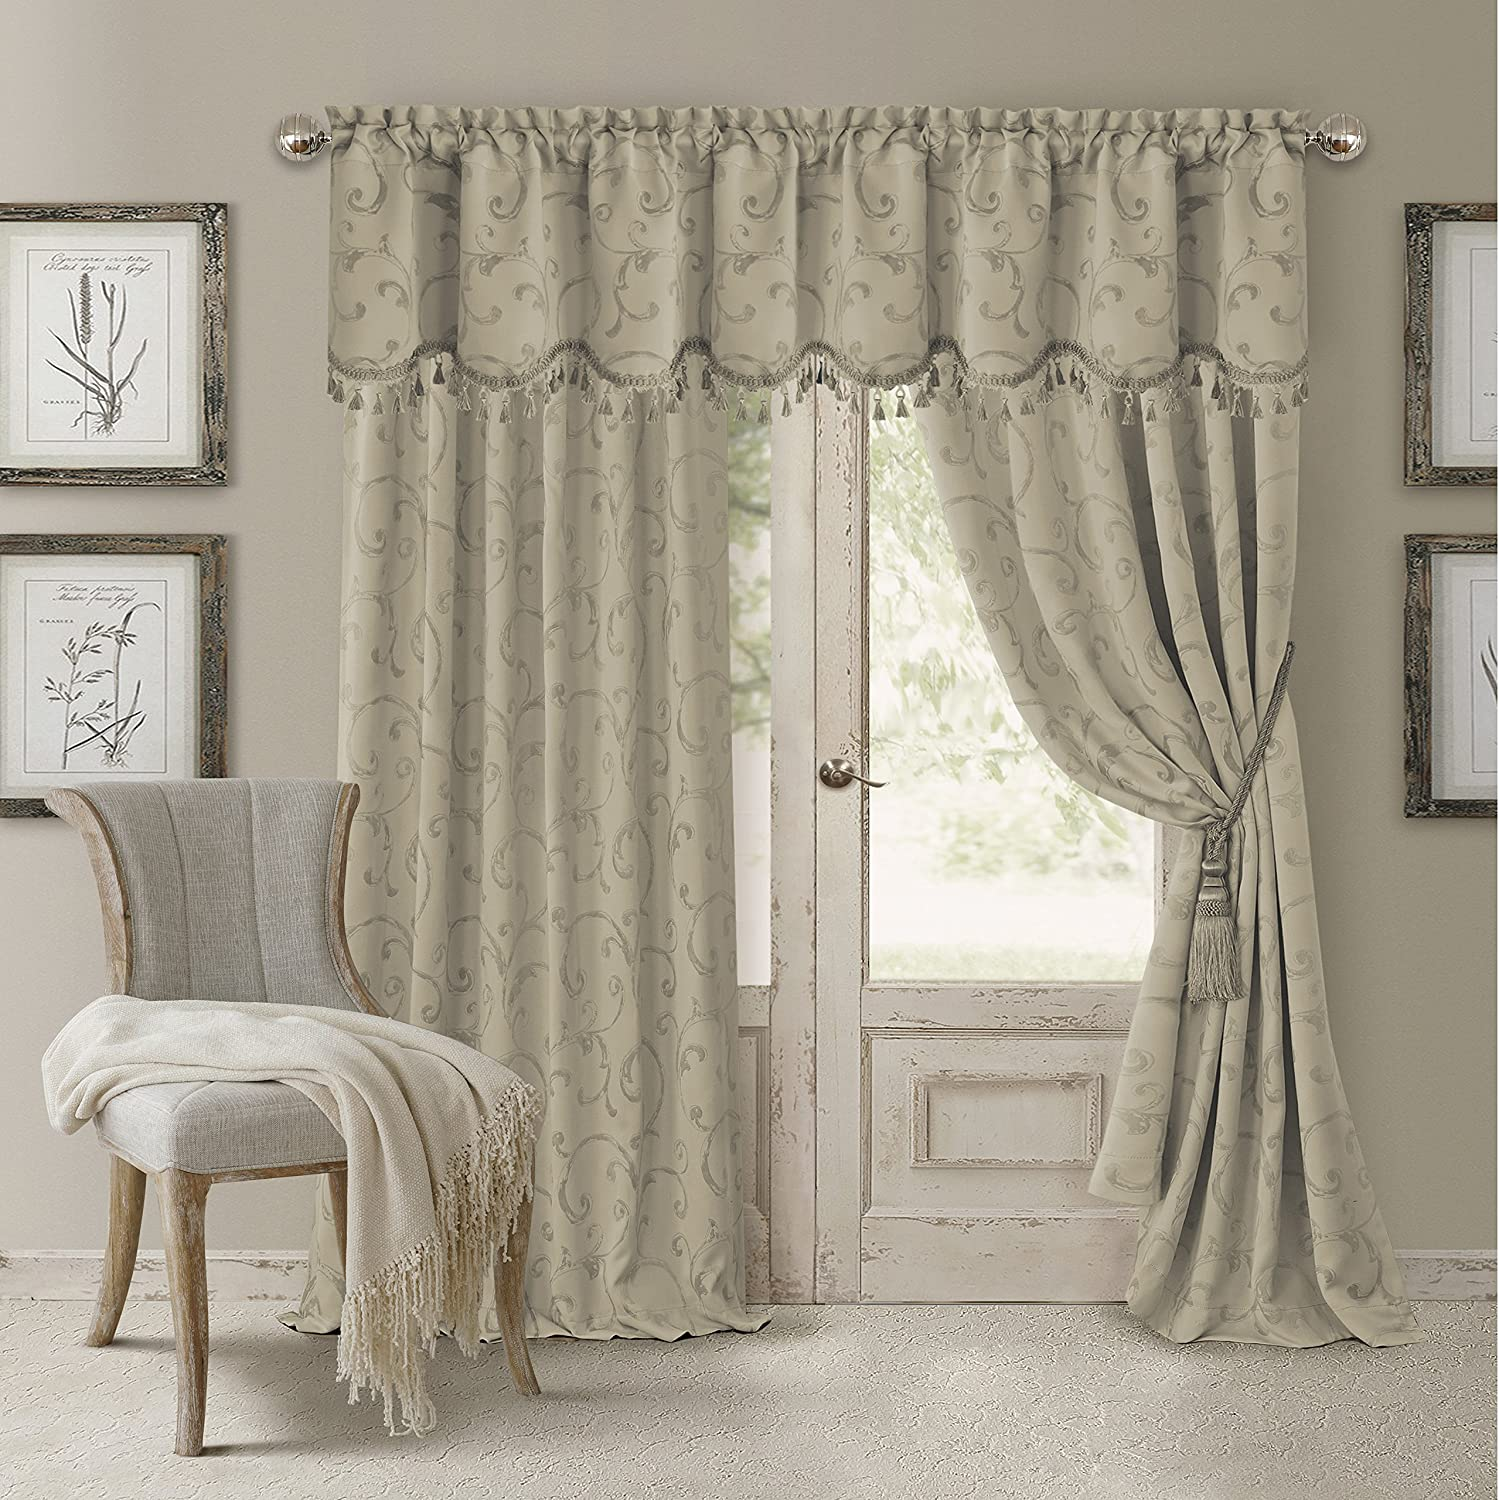 "Elrene Home Fashions 26865901450 Blackout Energy Efficient Room Darkening Rod Pocket Window Curtain Drape Regal Jacquard Woven Panel, 52"" x 84"", Natural, 1"